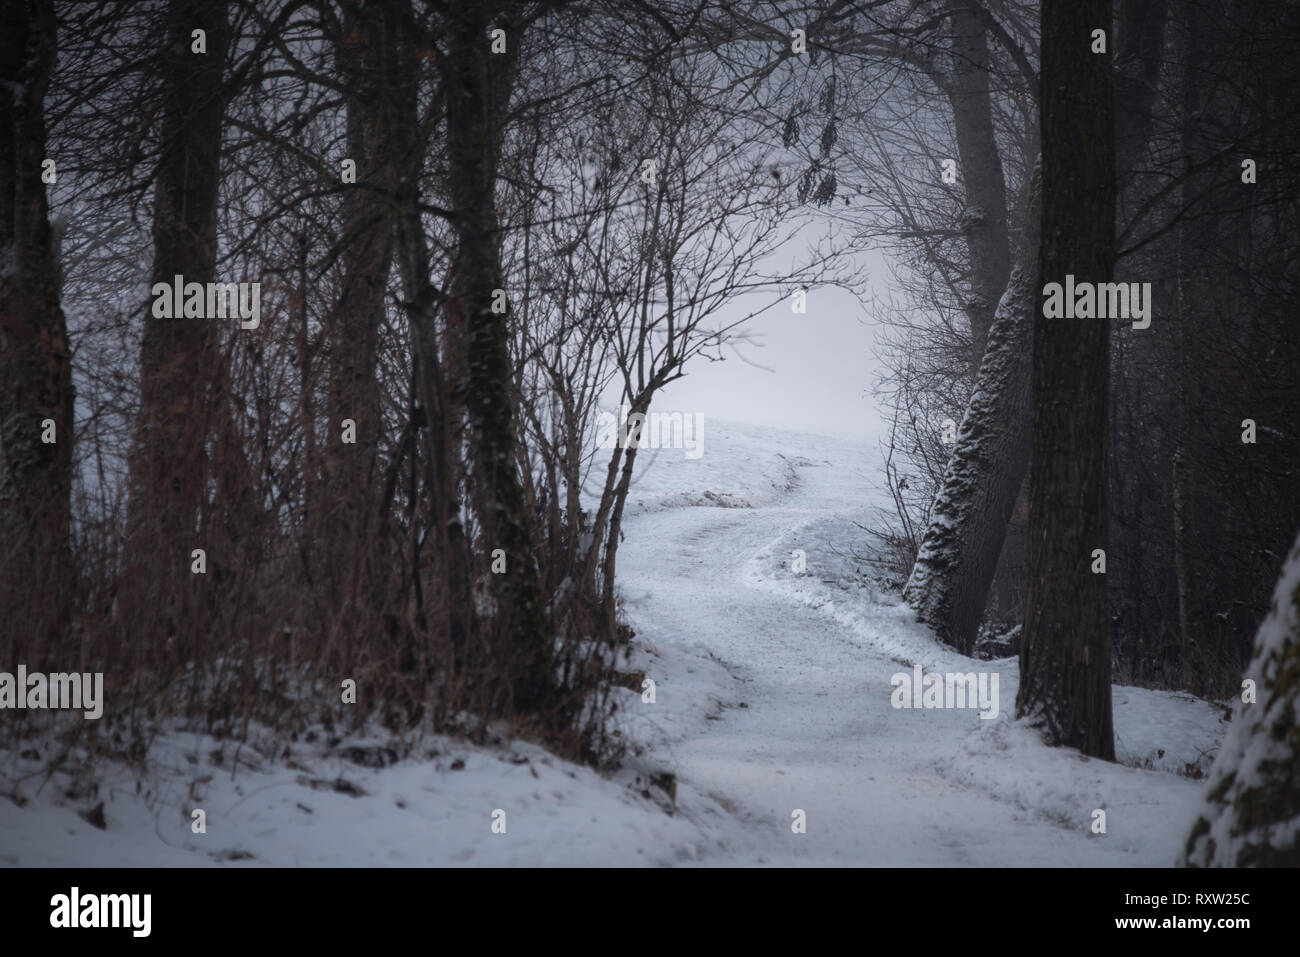 a beautiful forest path covered with snow, winter time in Austria, snowy landscape - Stock Image